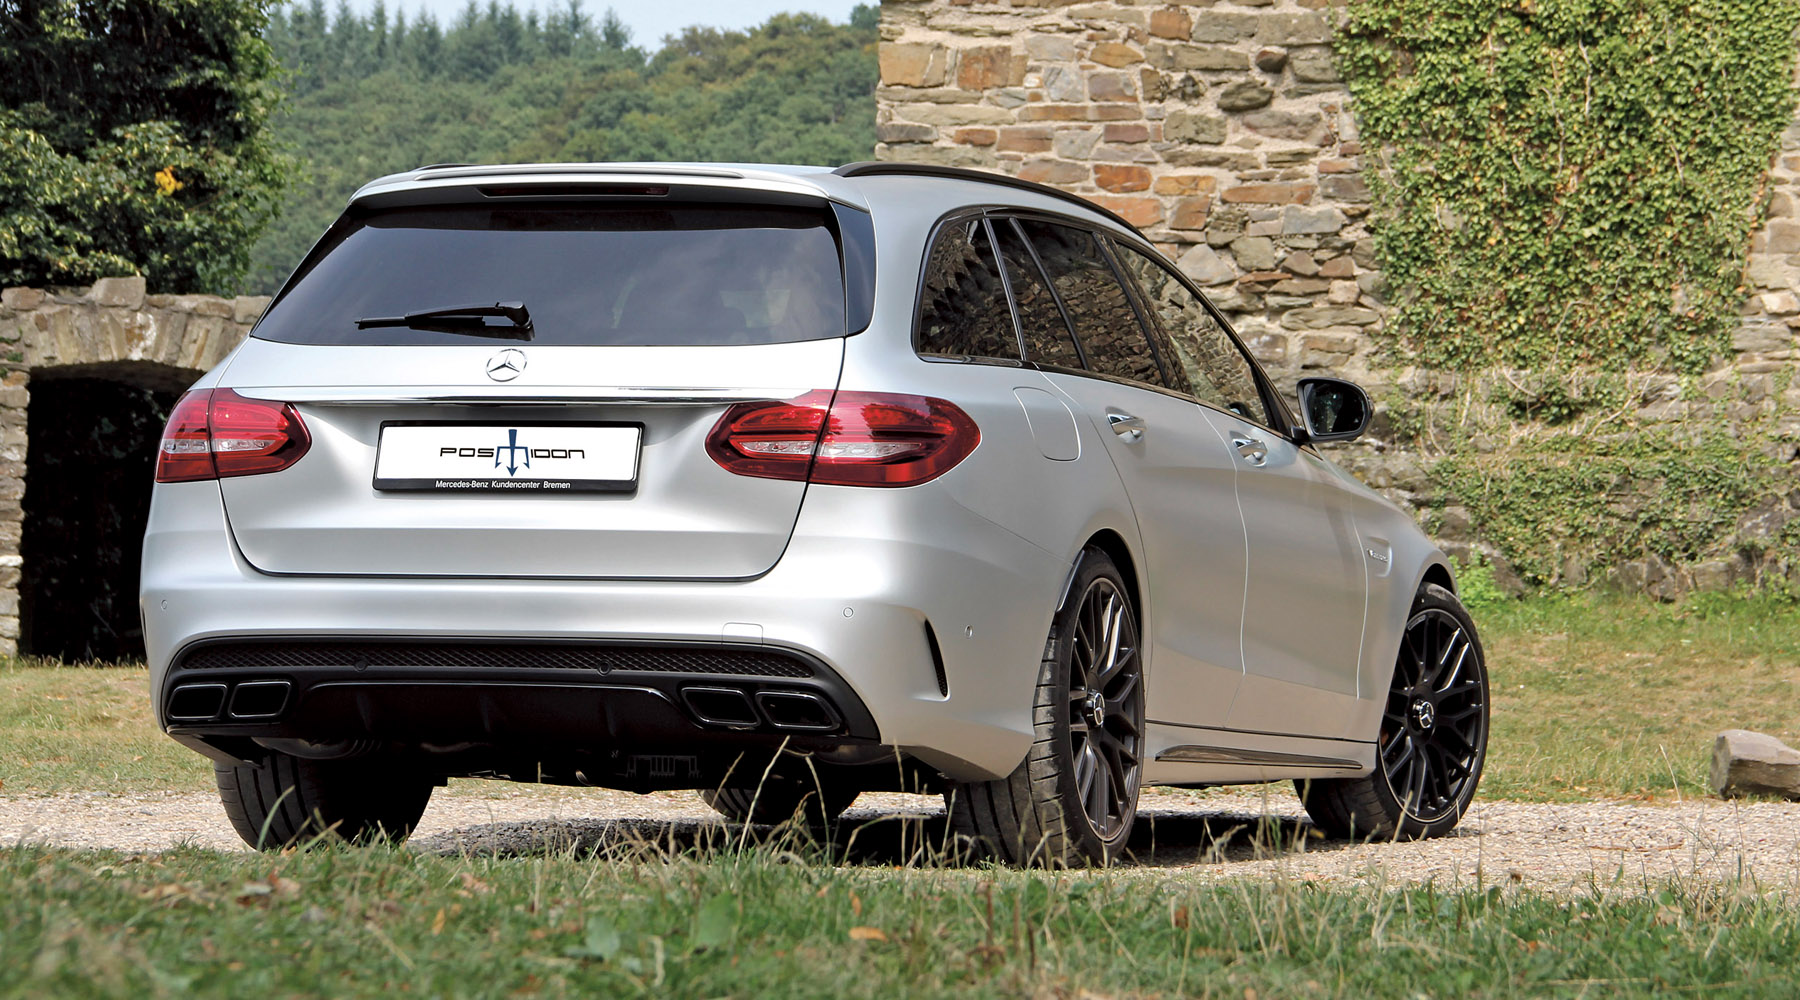 2-posaidon-mercedes-benz-amg-c63-station-wagon